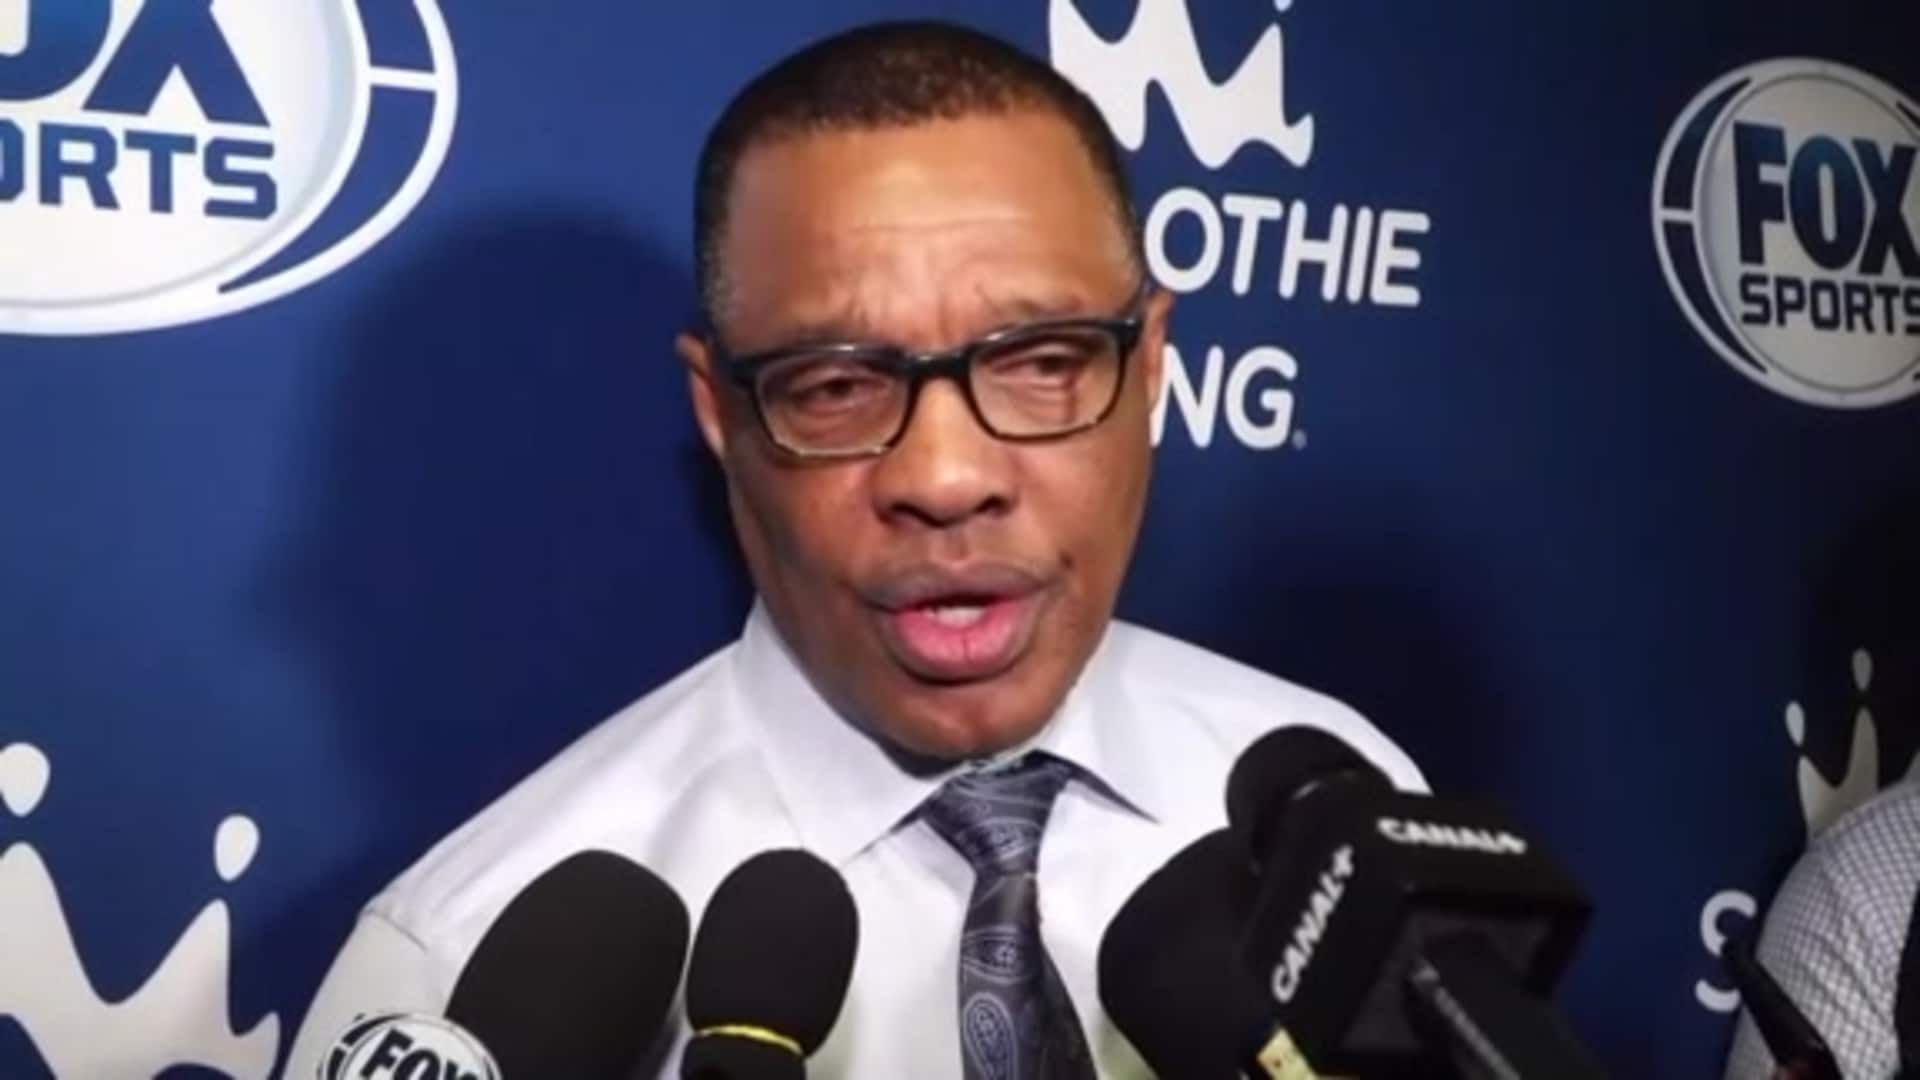 Pelicans at 76ers Postgame: Alvin Gentry 12-13-19